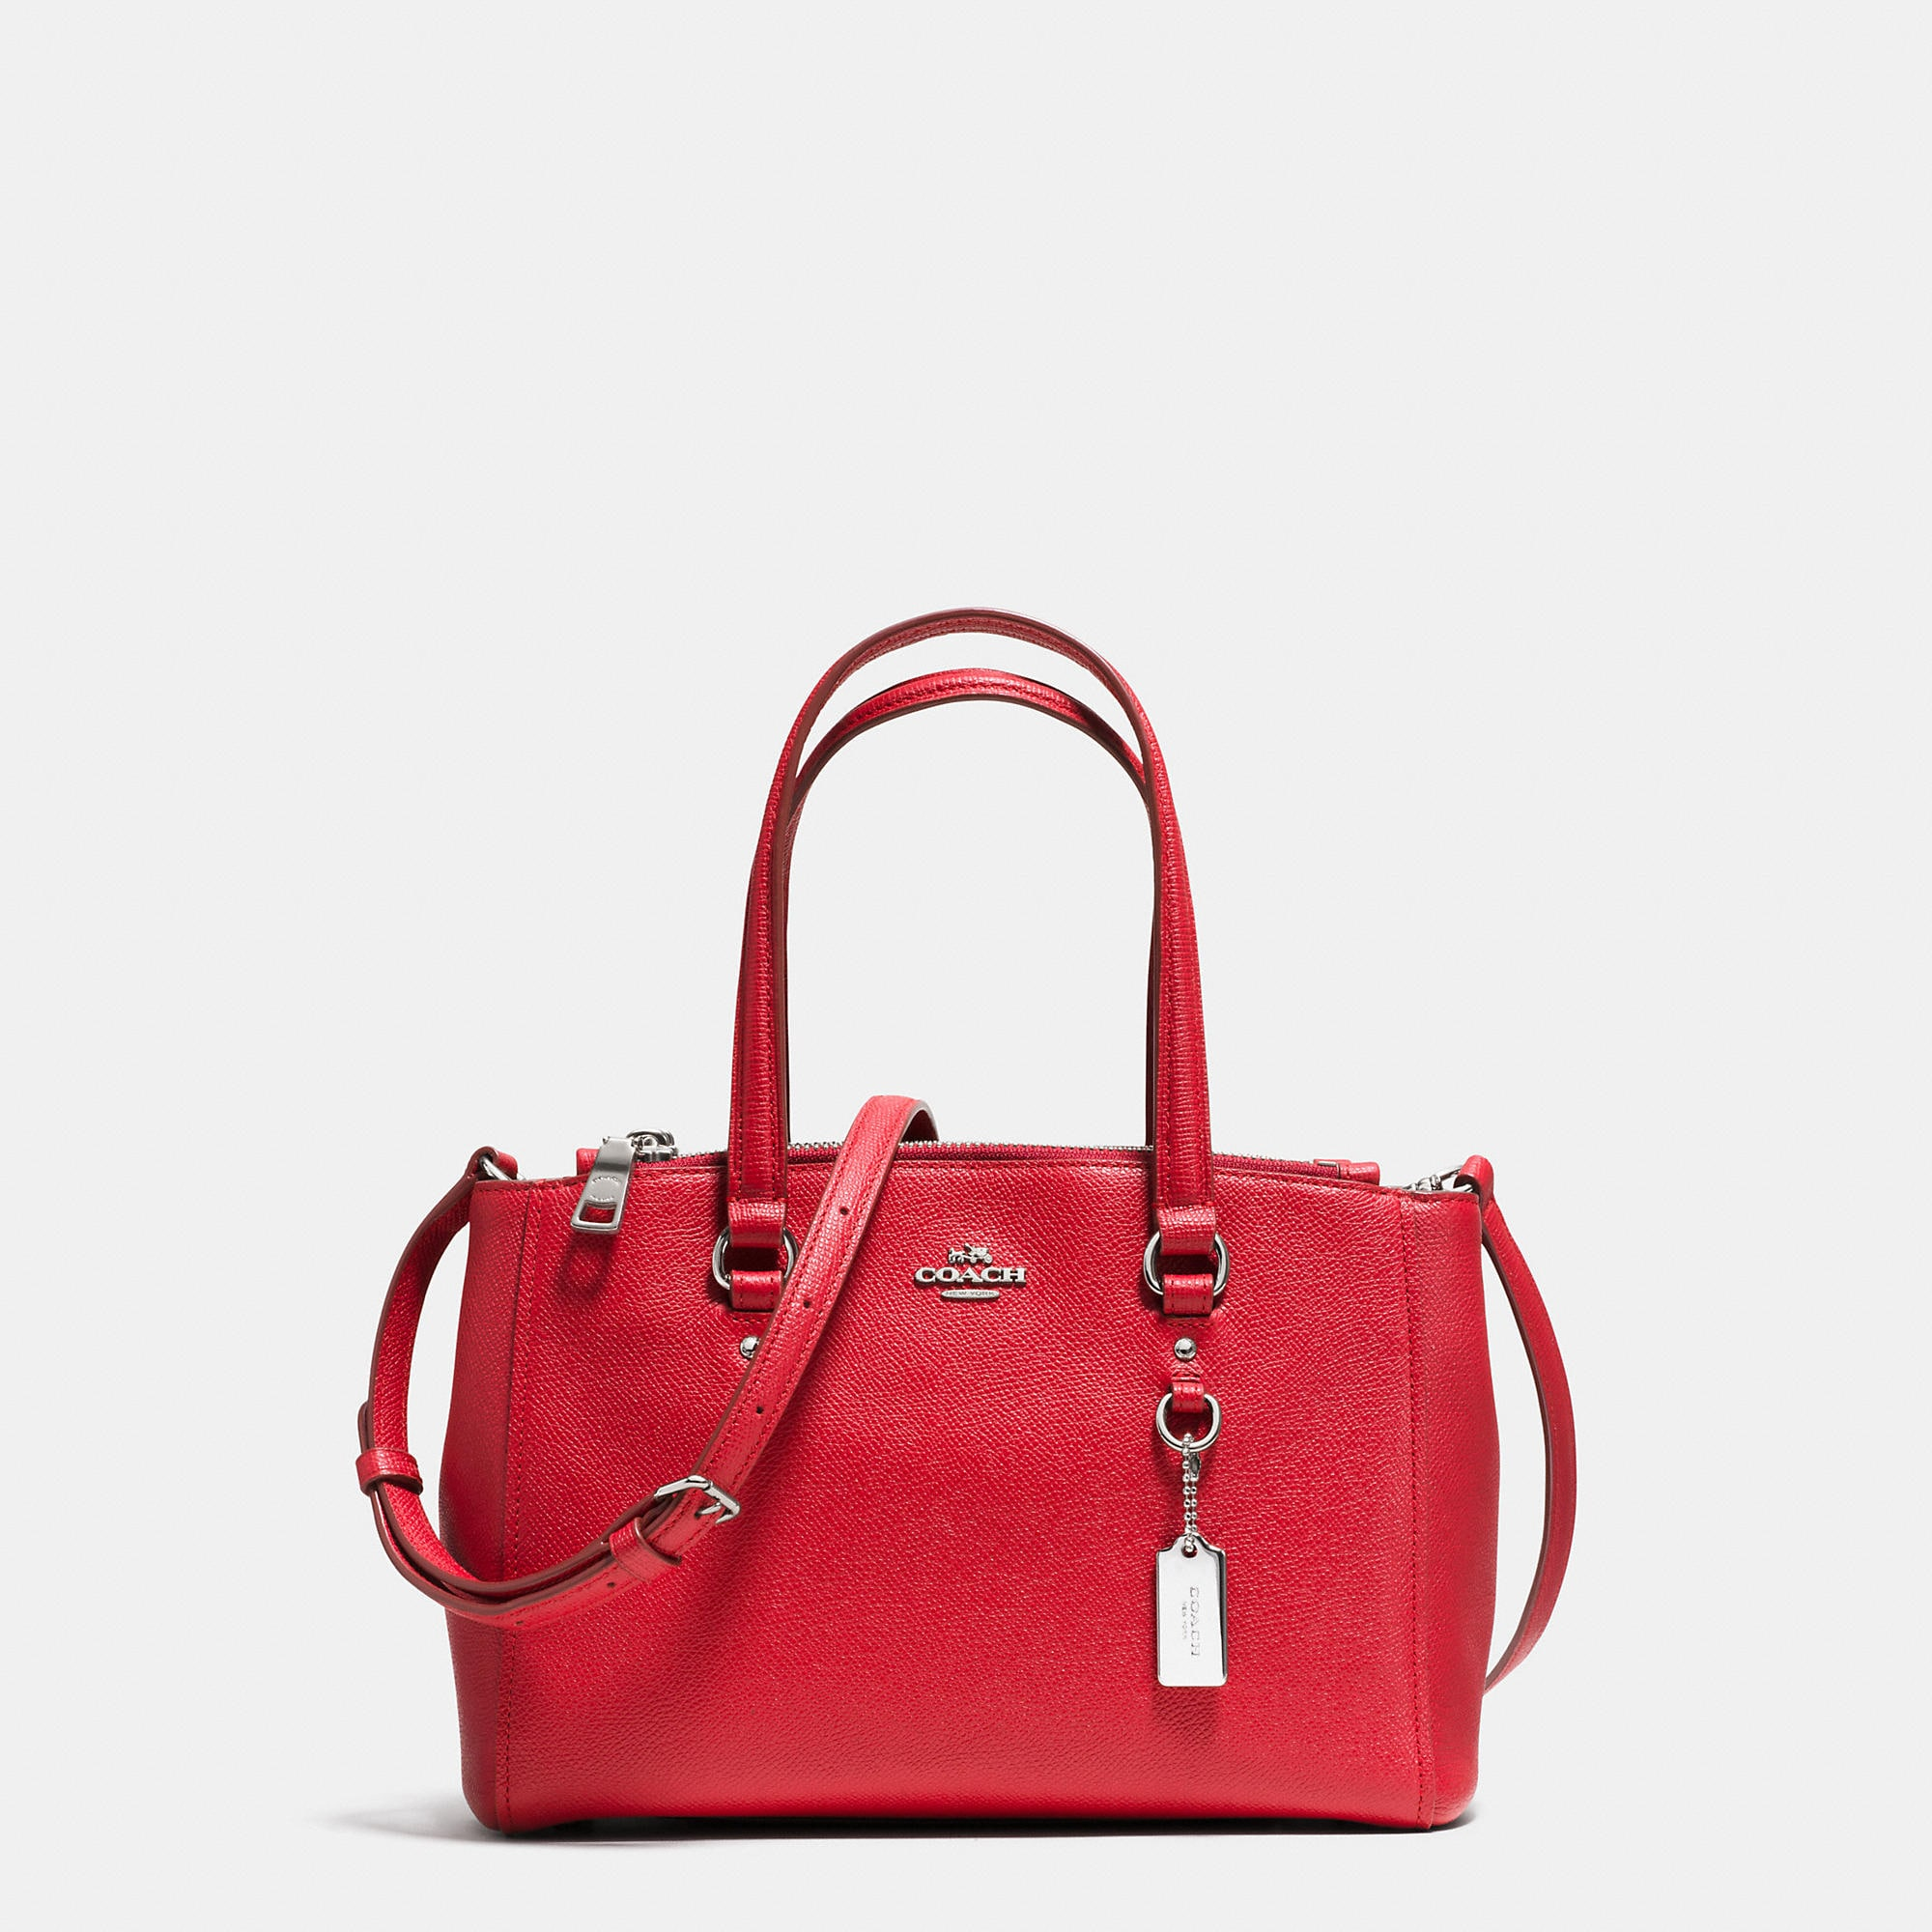 Coach Stanton Carryall 26 In Crossgrain Leather